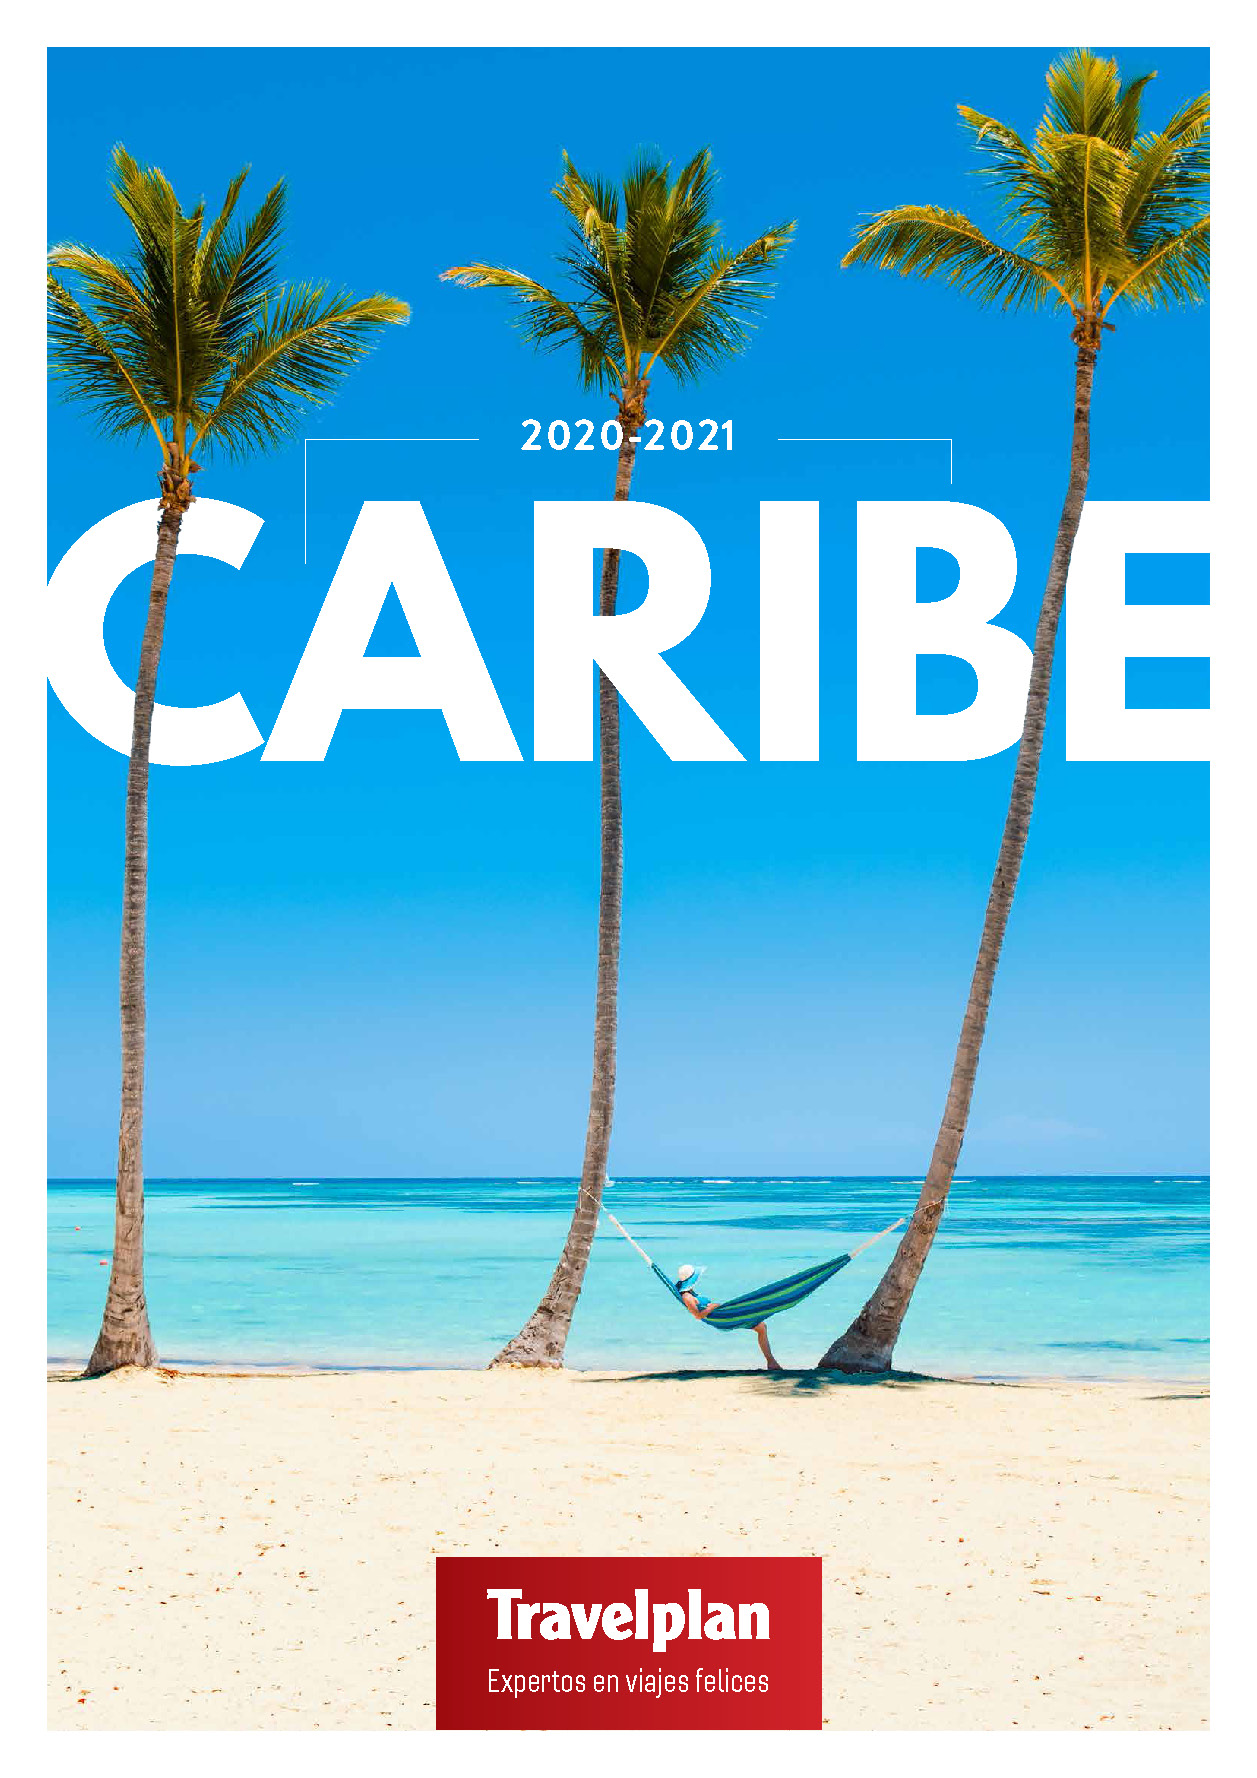 Catalogo Travelplan Caribe 2020-2021